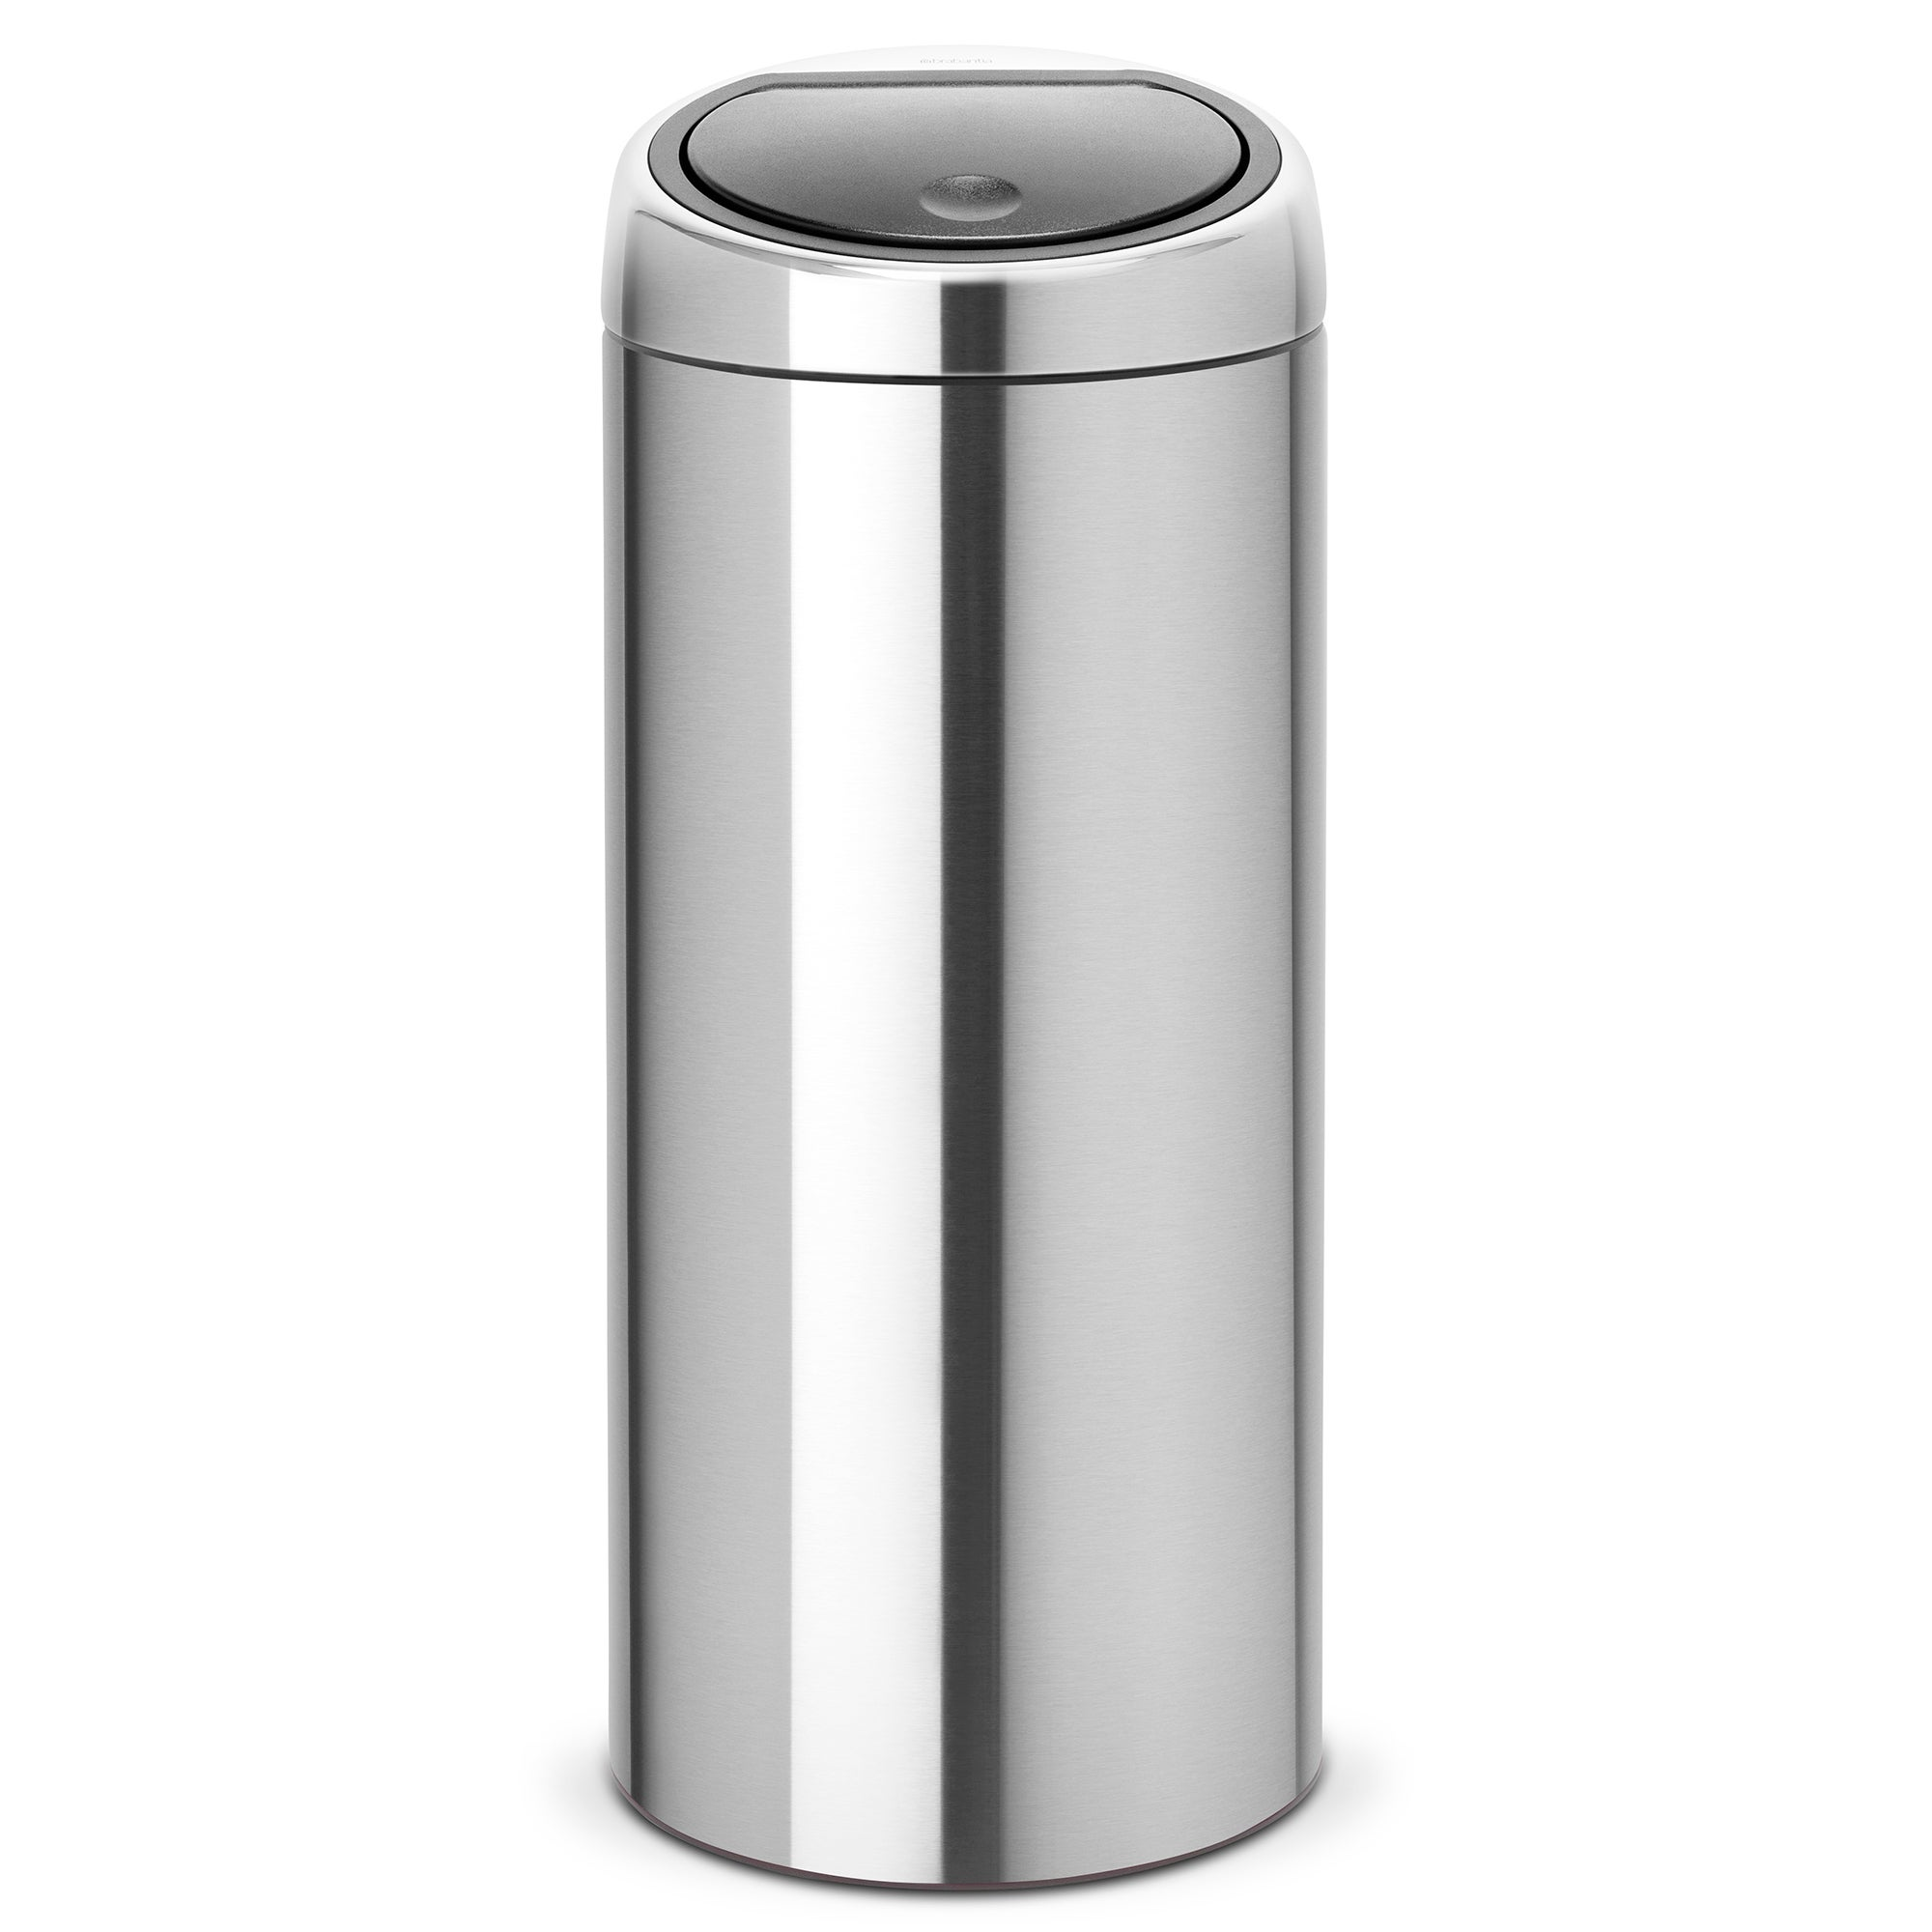 brabantia matt steel 30 litre touch bin dunelm. Black Bedroom Furniture Sets. Home Design Ideas